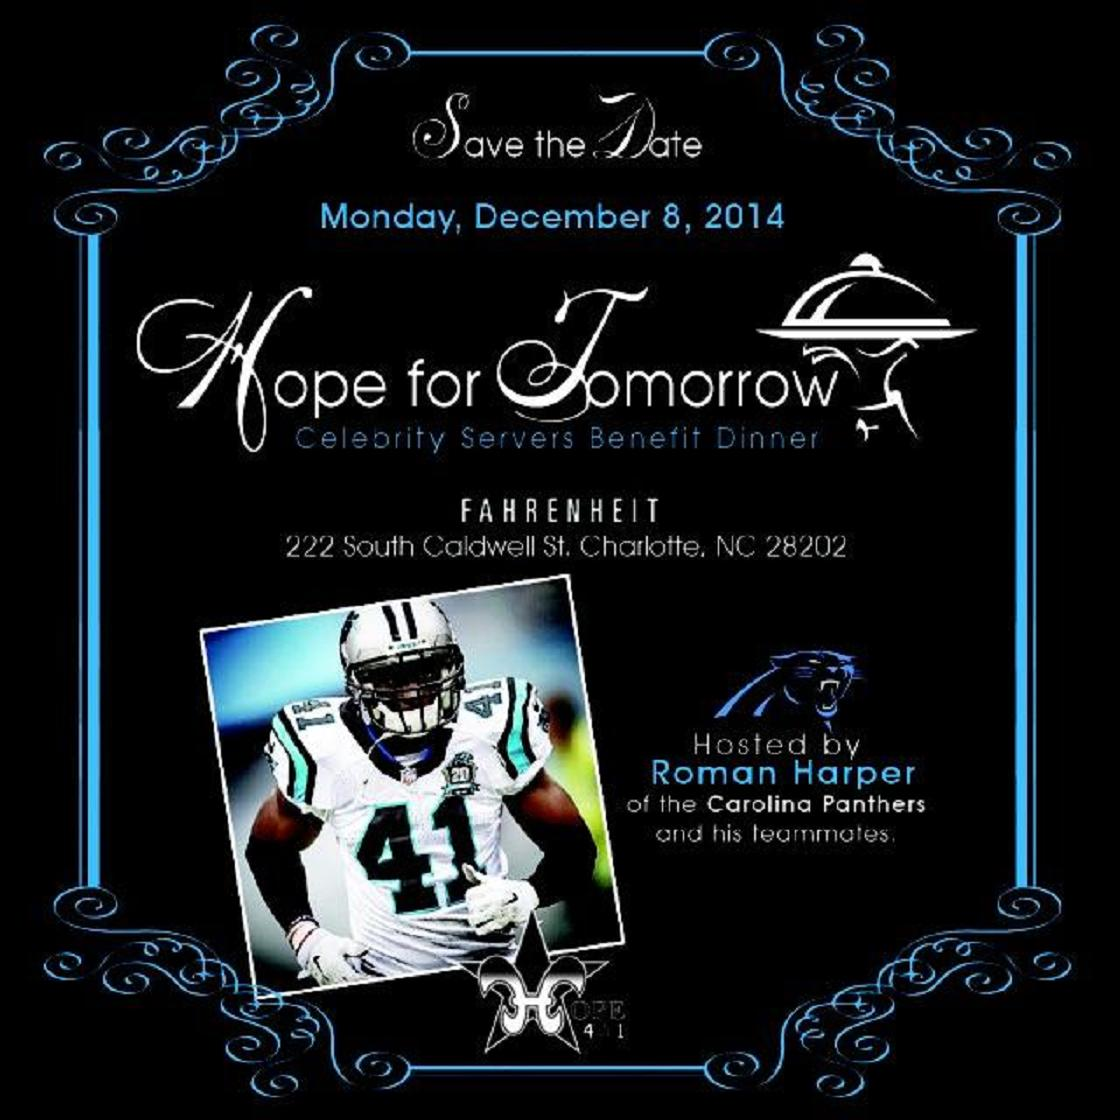 Join @Harp41/@HarpersHope_41 @Panthers @Rock1chef @JeffGordonWine @FahrenheitCLT for R youths! http://t.co/8ZUkJg8TTC http://t.co/gcpsJIToHn